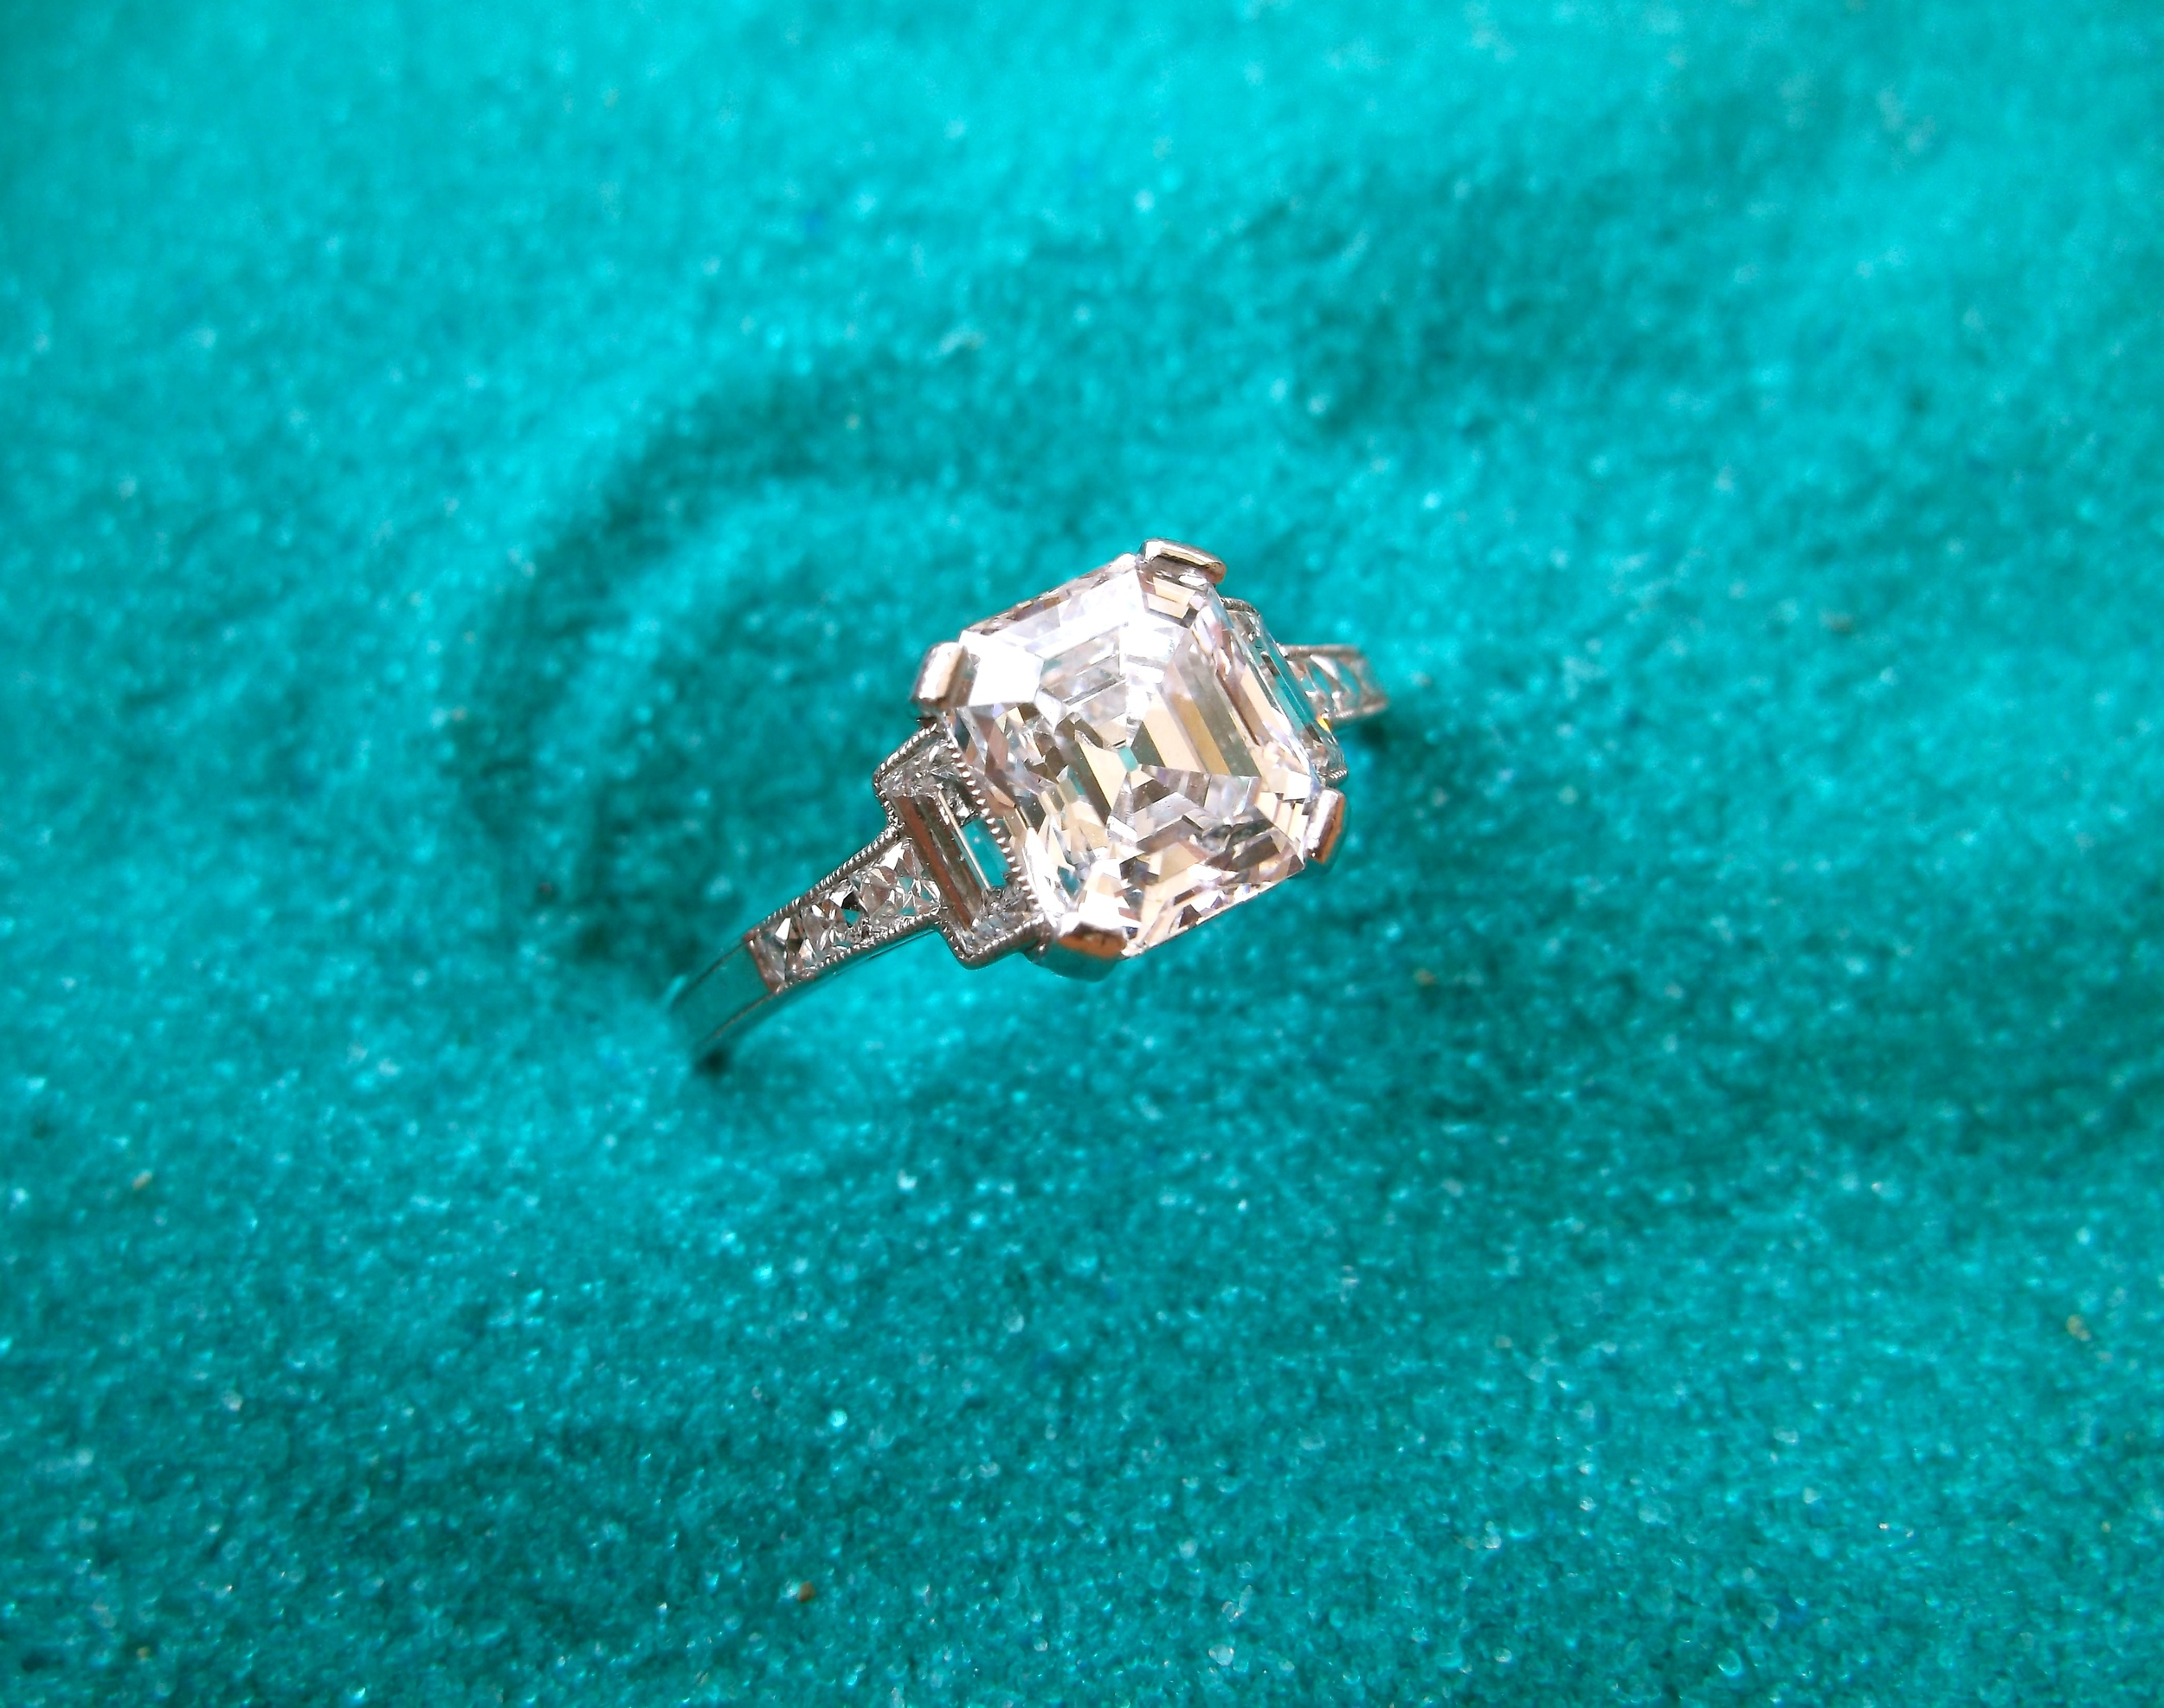 SOLD - Incredible Tiffany & Co. 1.67 carat, D color, asscher cut diamond set in a stunning Tiffany & Co. diamond and platinum mounting.